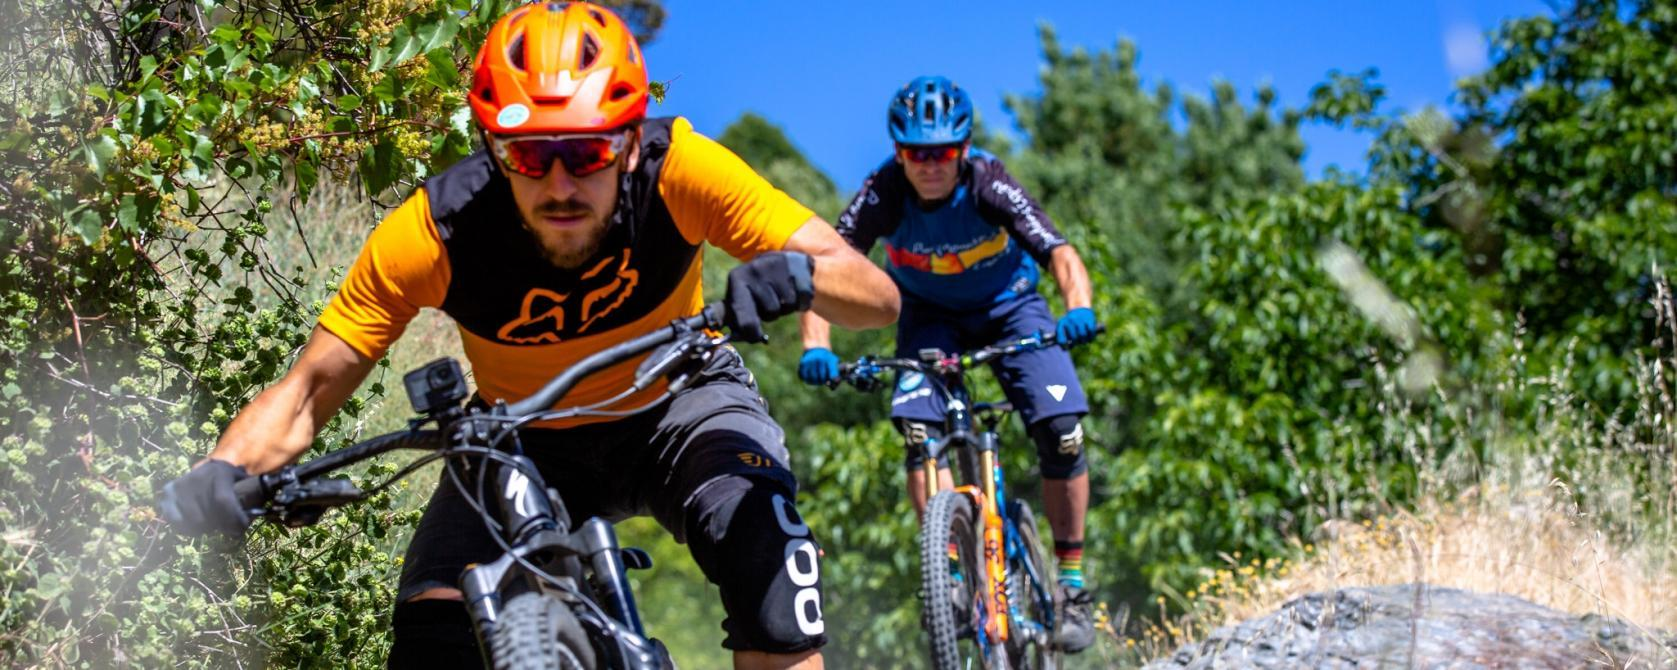 Mountain bike holidays in Spain